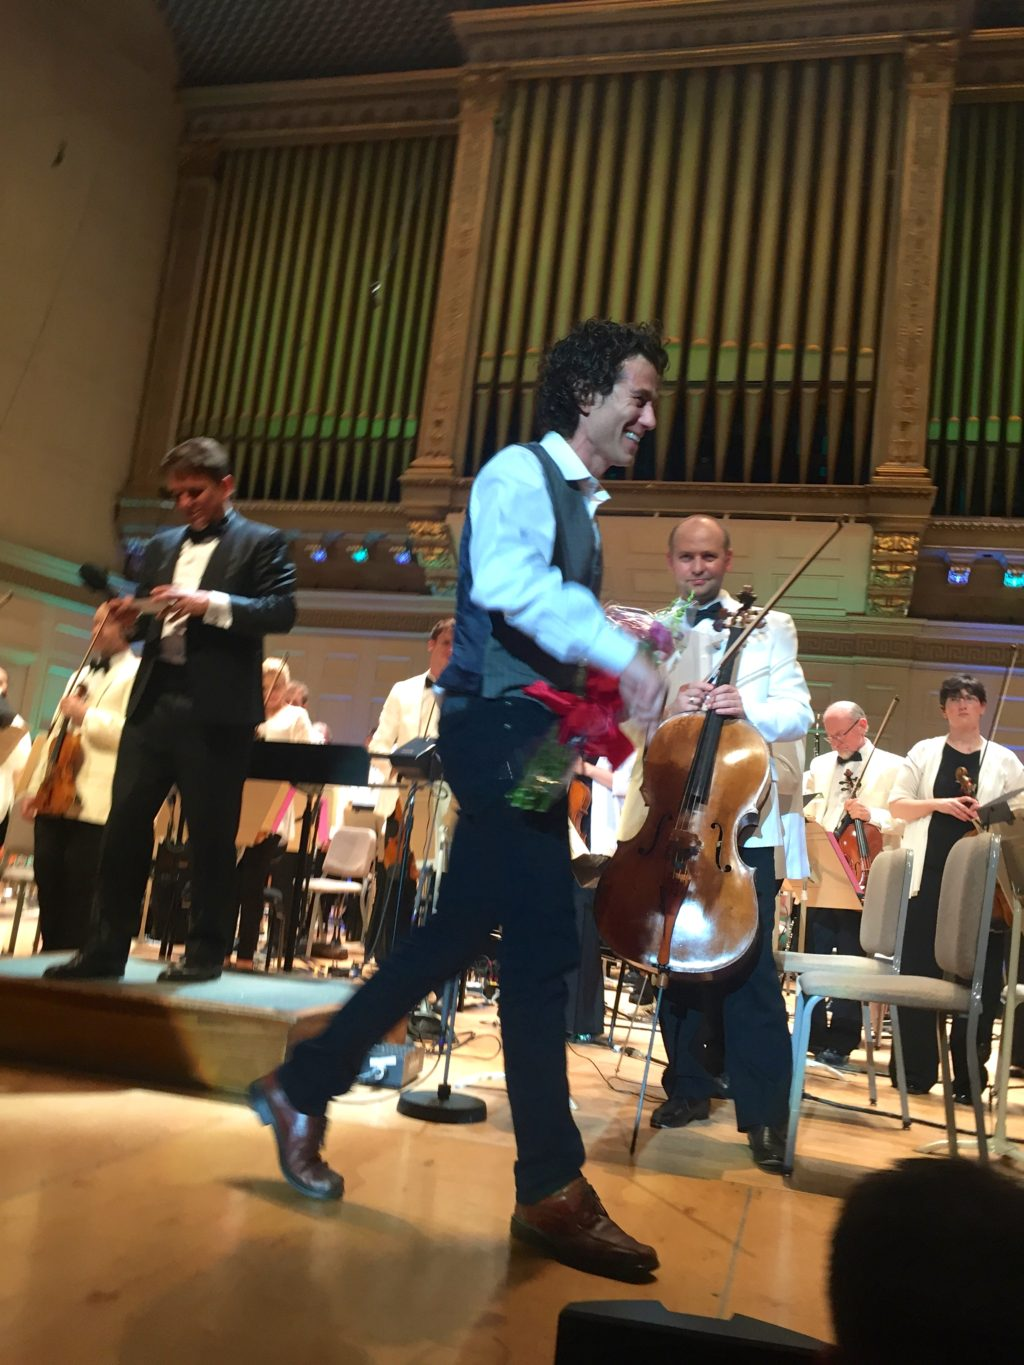 Ben after a performance of his music at the BSO